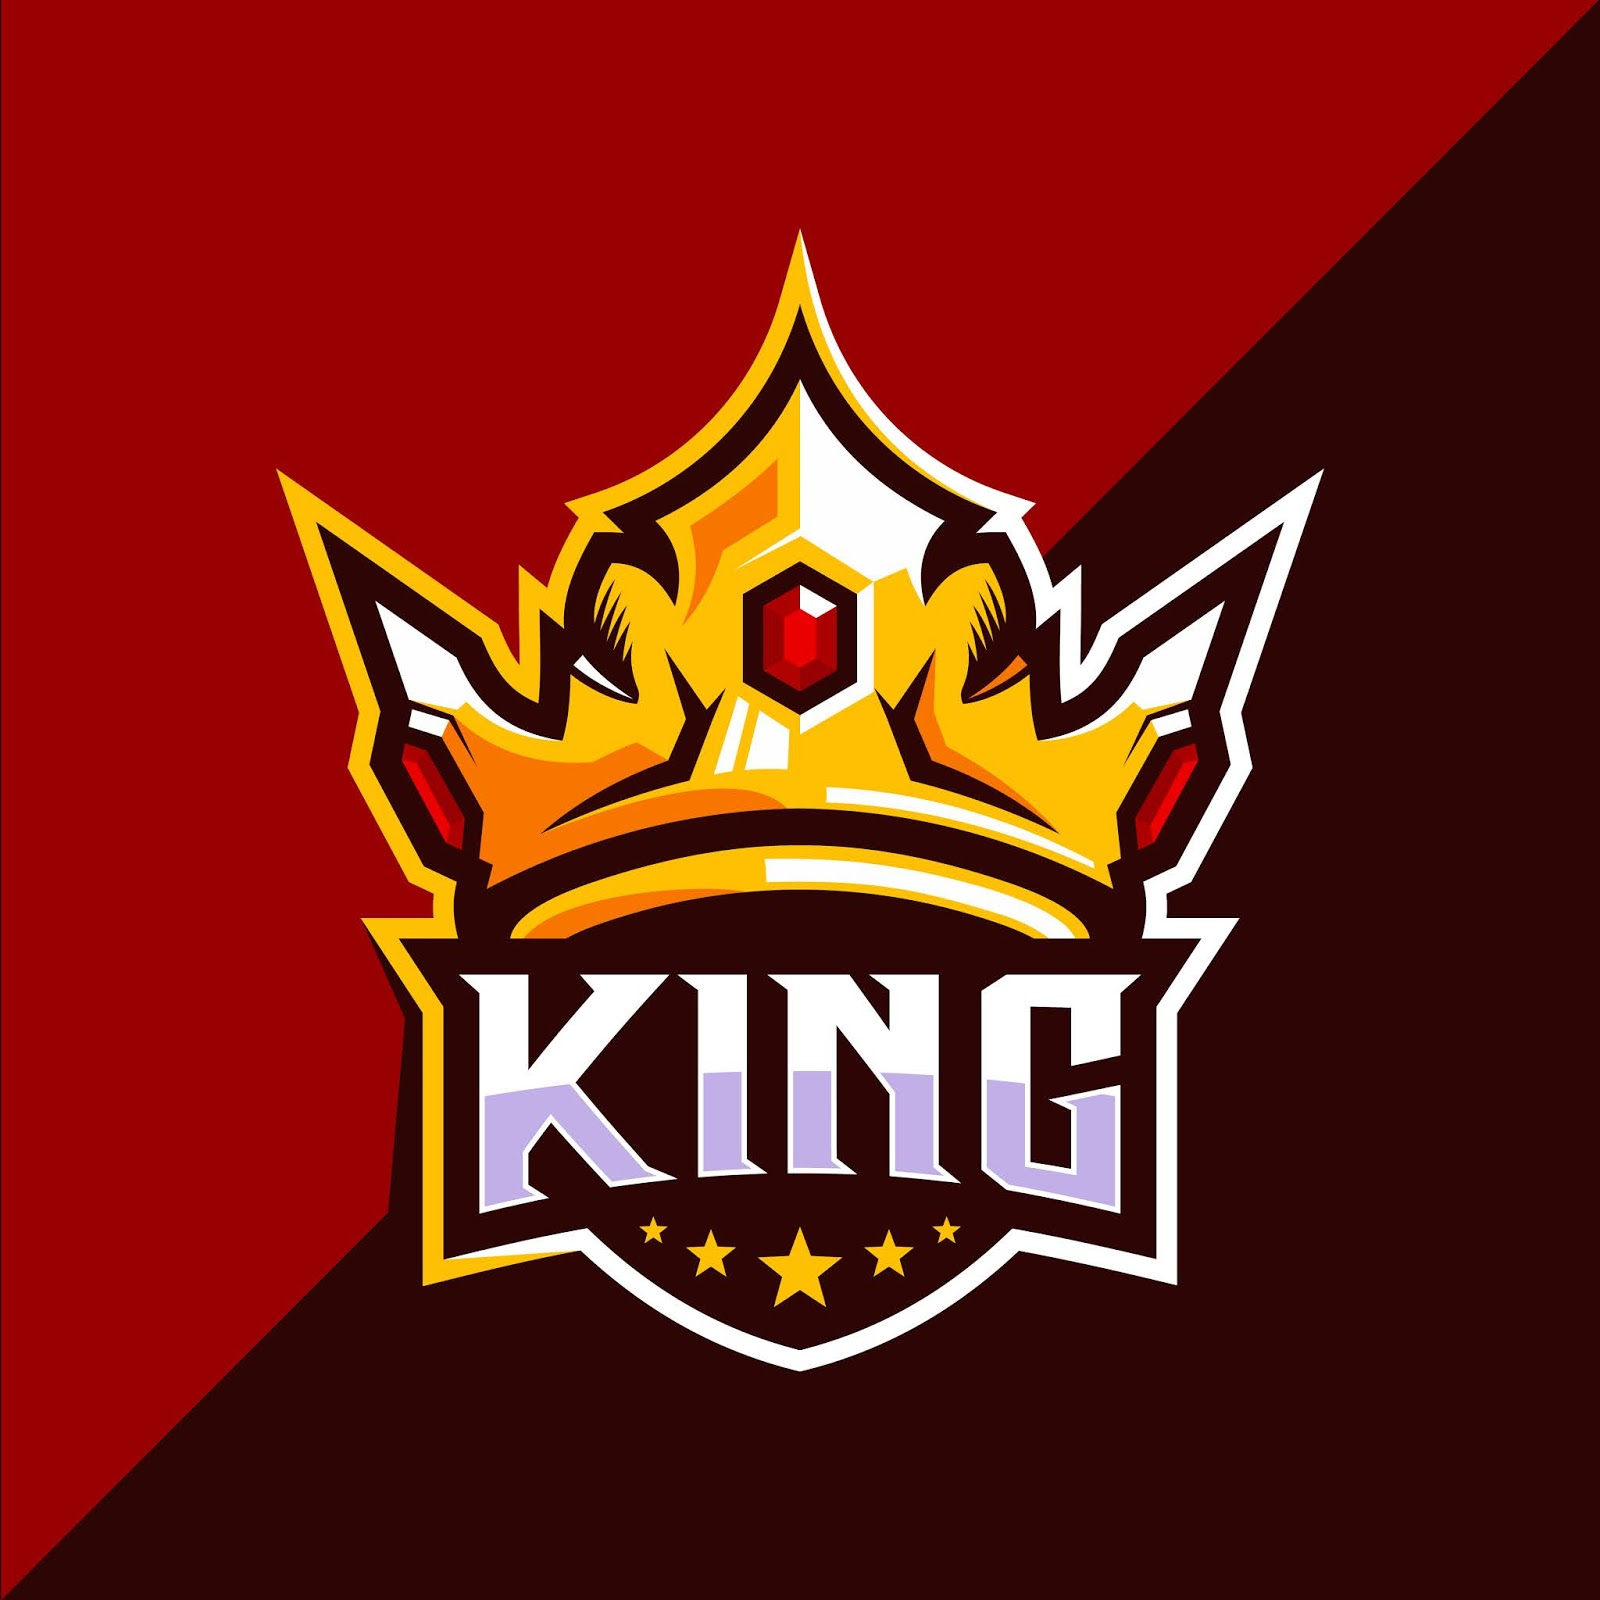 King Crown Esport Logo Design Free Download Vector CDR, AI, EPS and PNG Formats